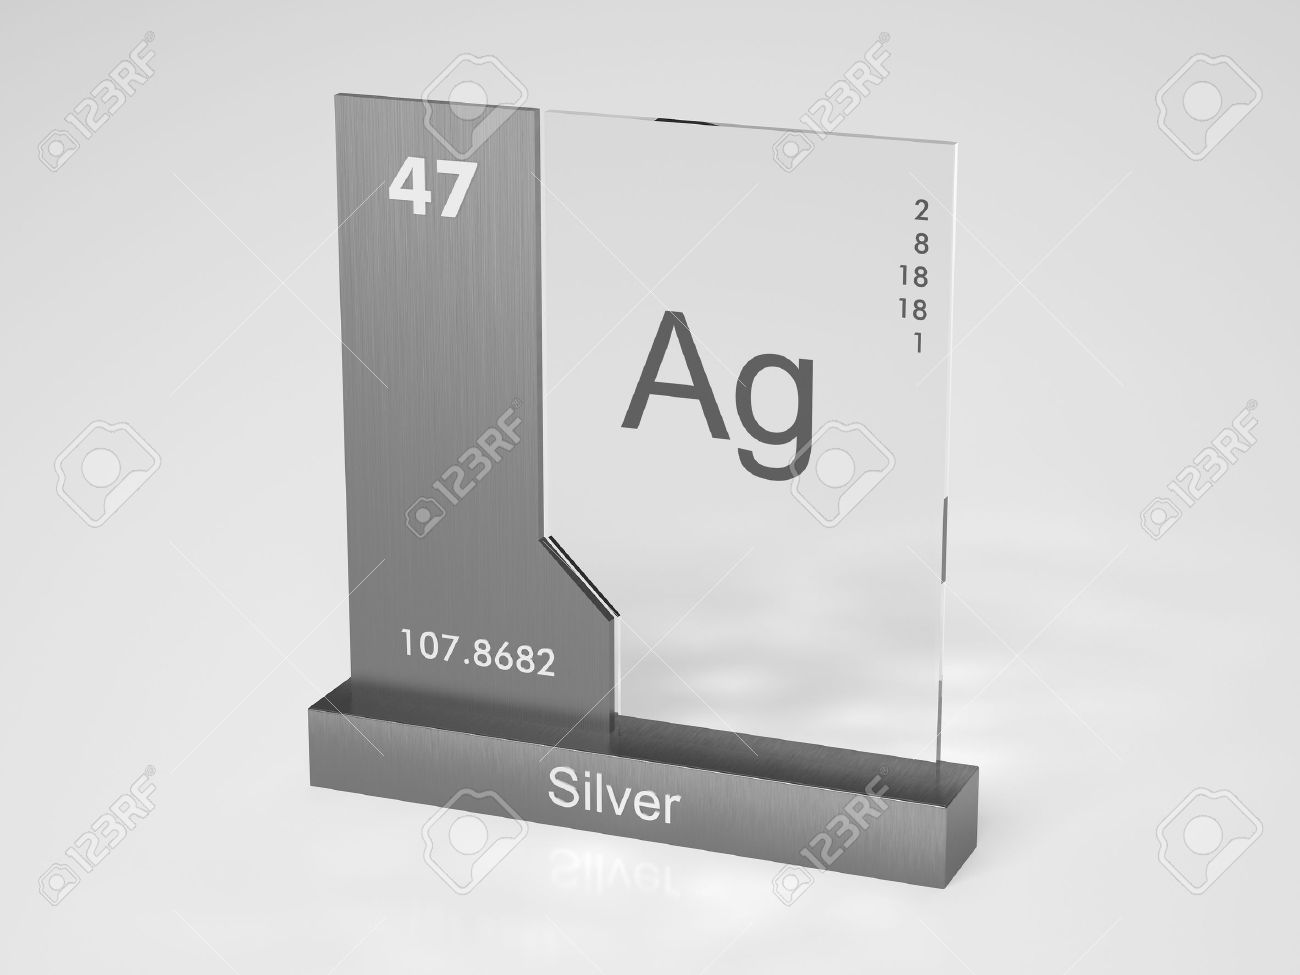 Symbol for gold periodic table gallery periodic table images silver symbol ag chemical element of the periodic table stock silver symbol ag chemical element of gamestrikefo Choice Image